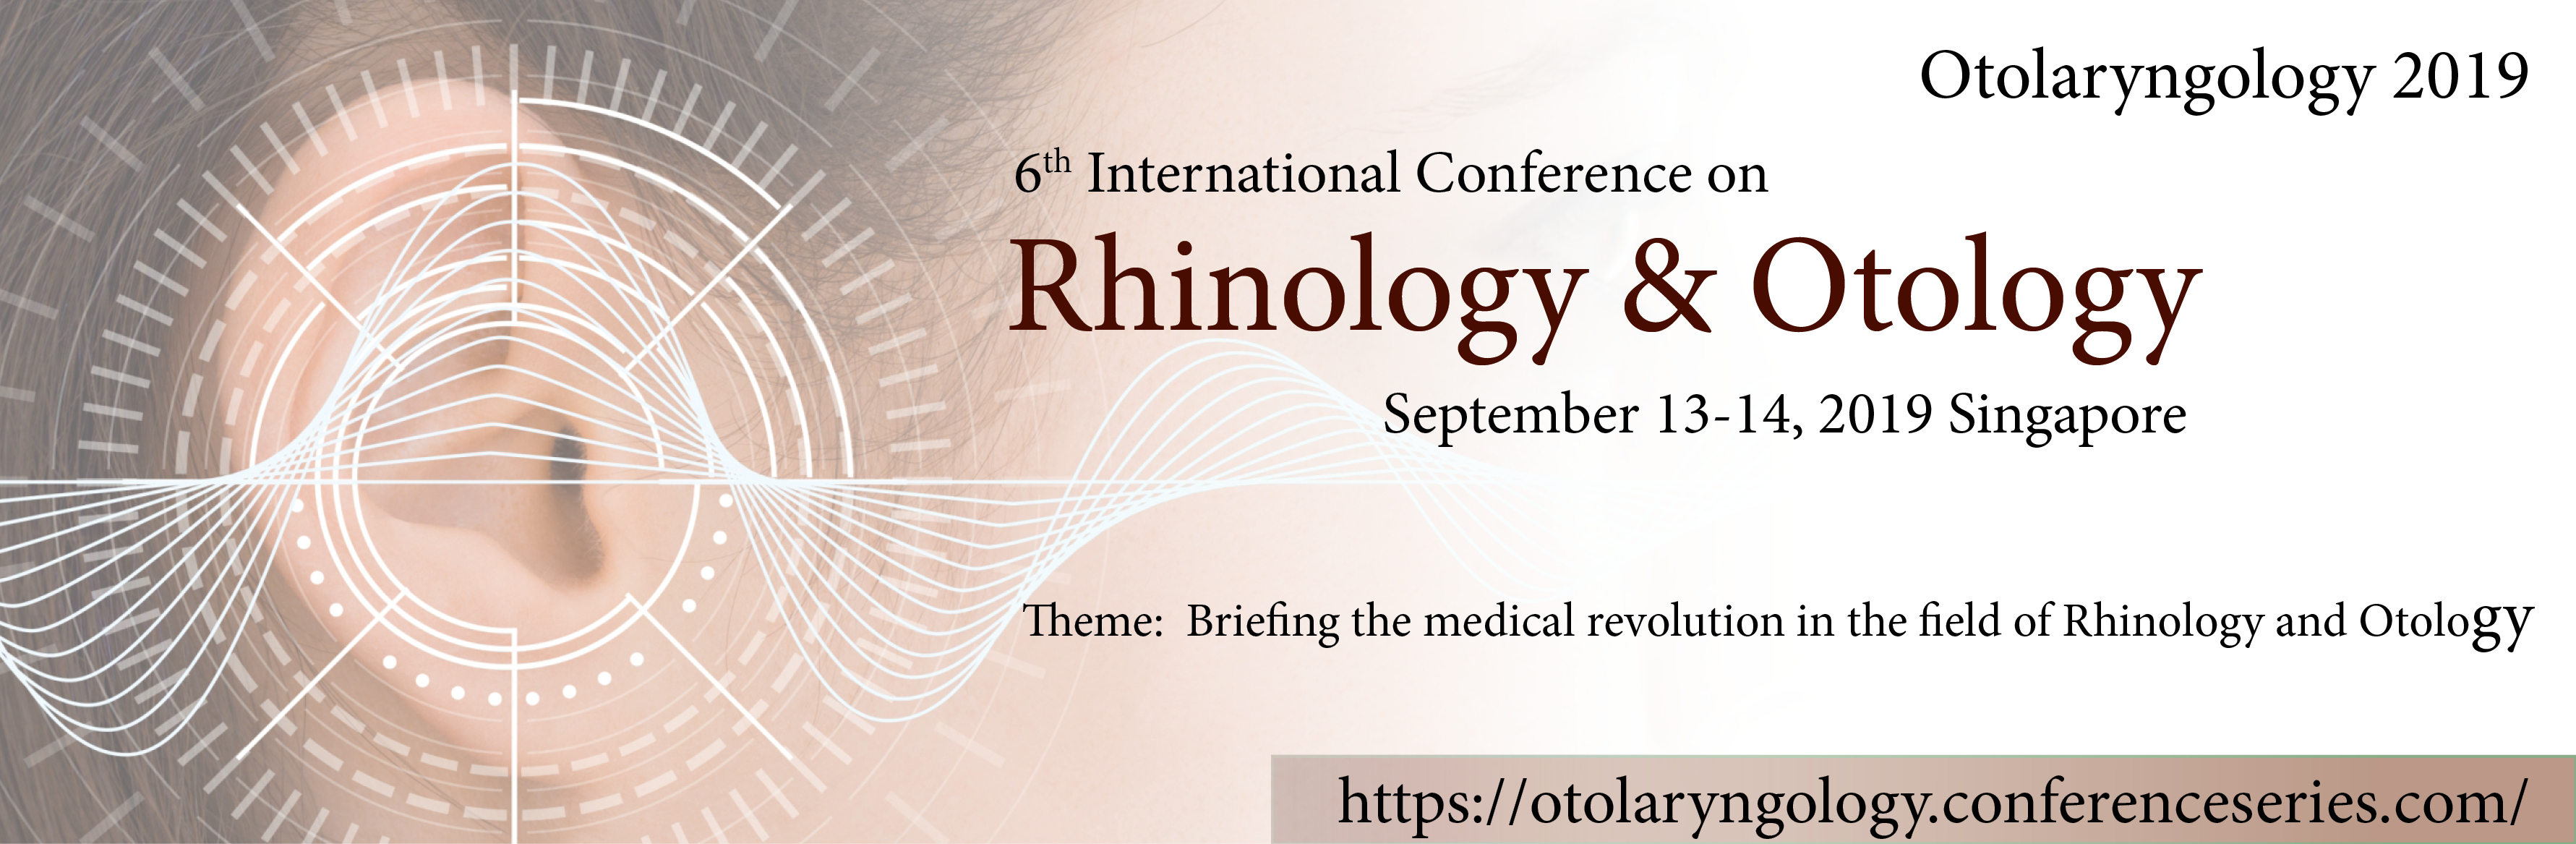 6th International Conference on Rhinology & Otology (Otolaryngology